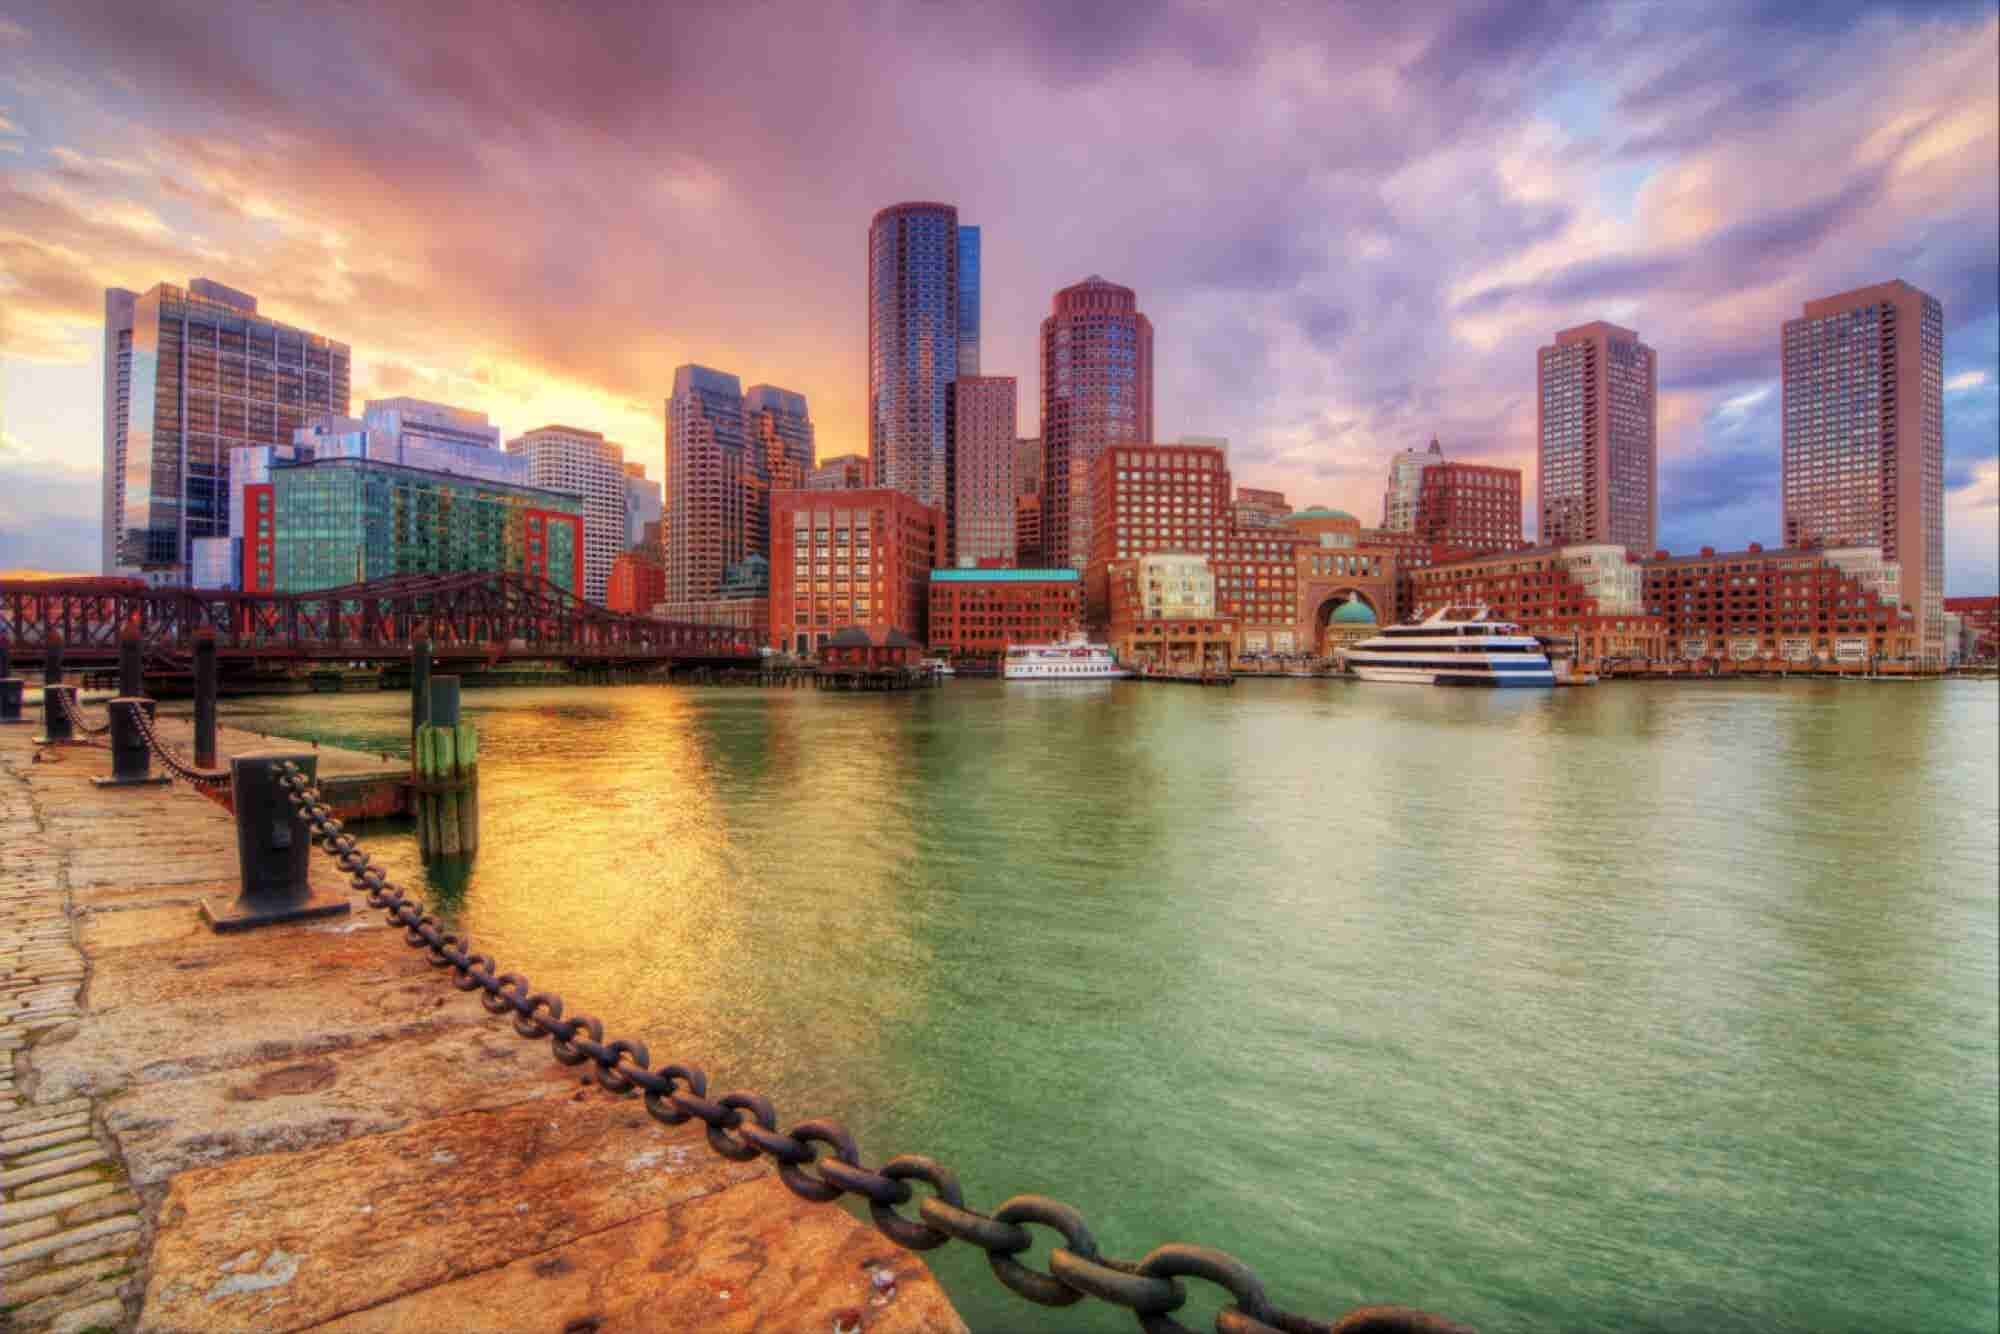 The 10 Most Expensive U.S Cities for Business Travelers